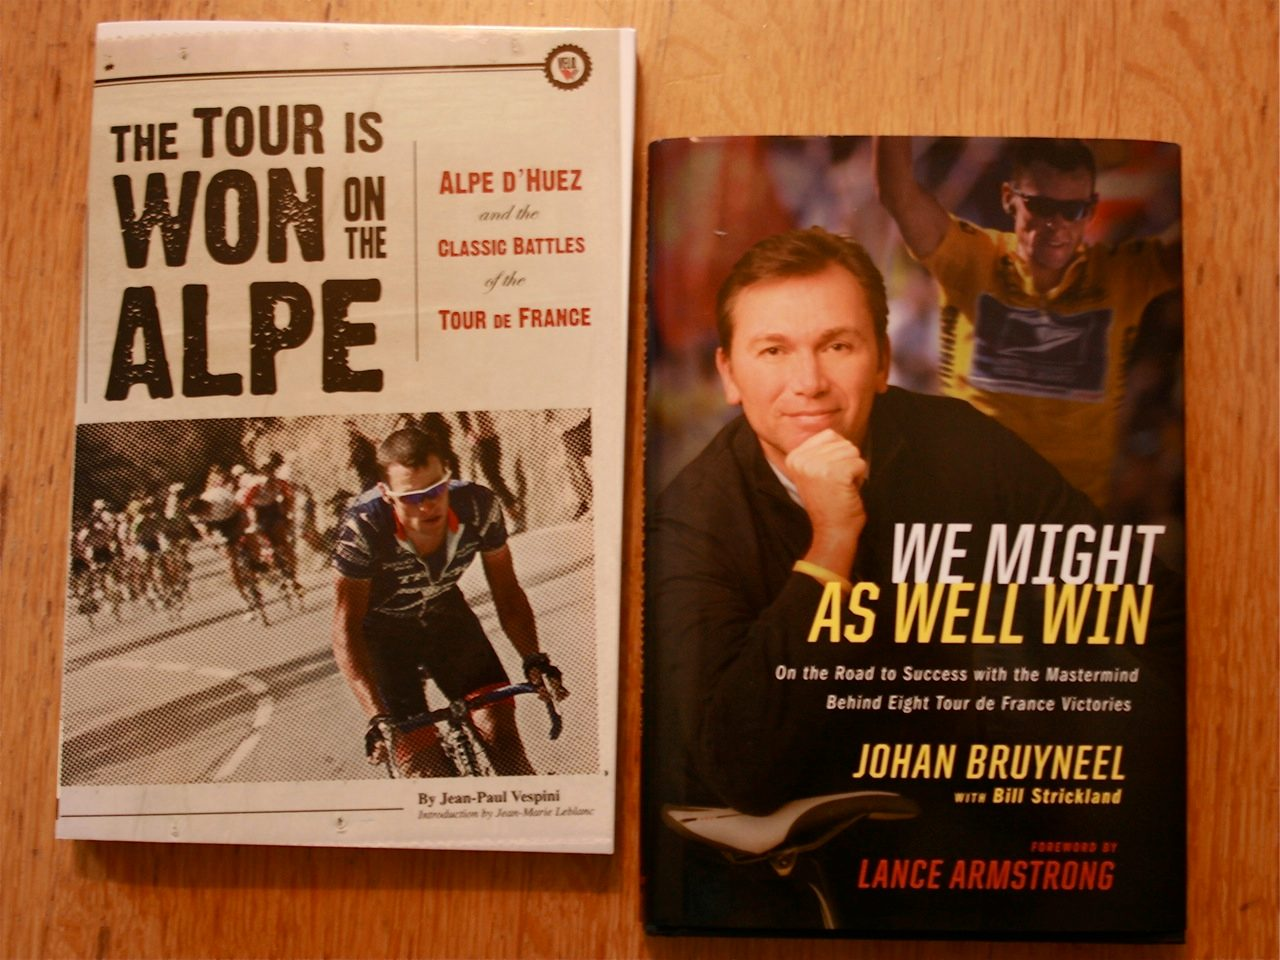 We Might As Well Win: On the Road to Success with the Mastermind Behind Eight Tour de FranceVictories